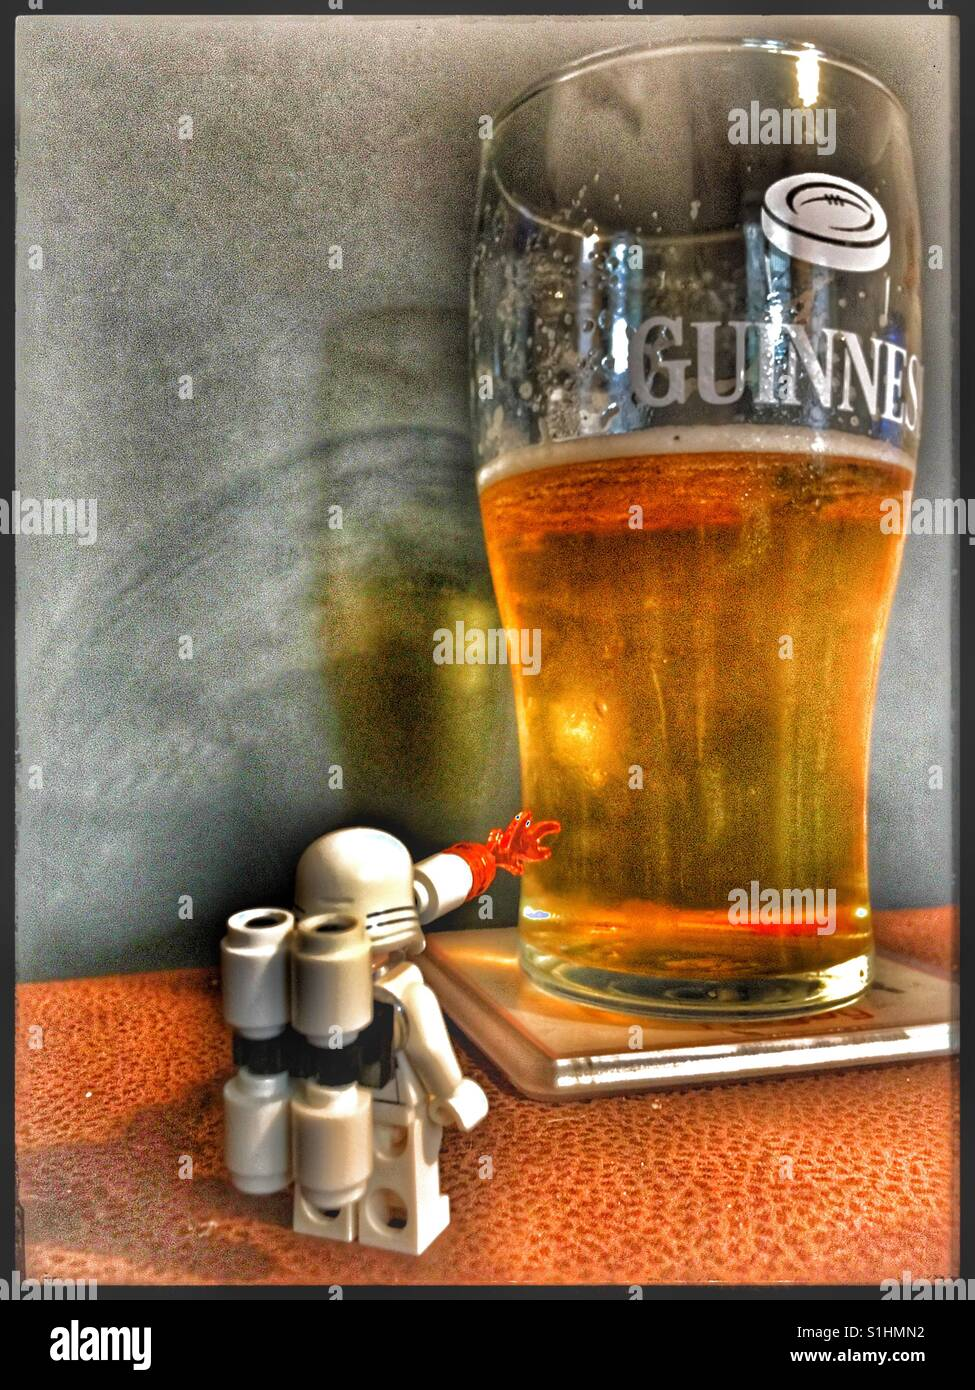 Lego Star Wars First Order Flametrooper mini figure with pint of Lager. - Stock Image